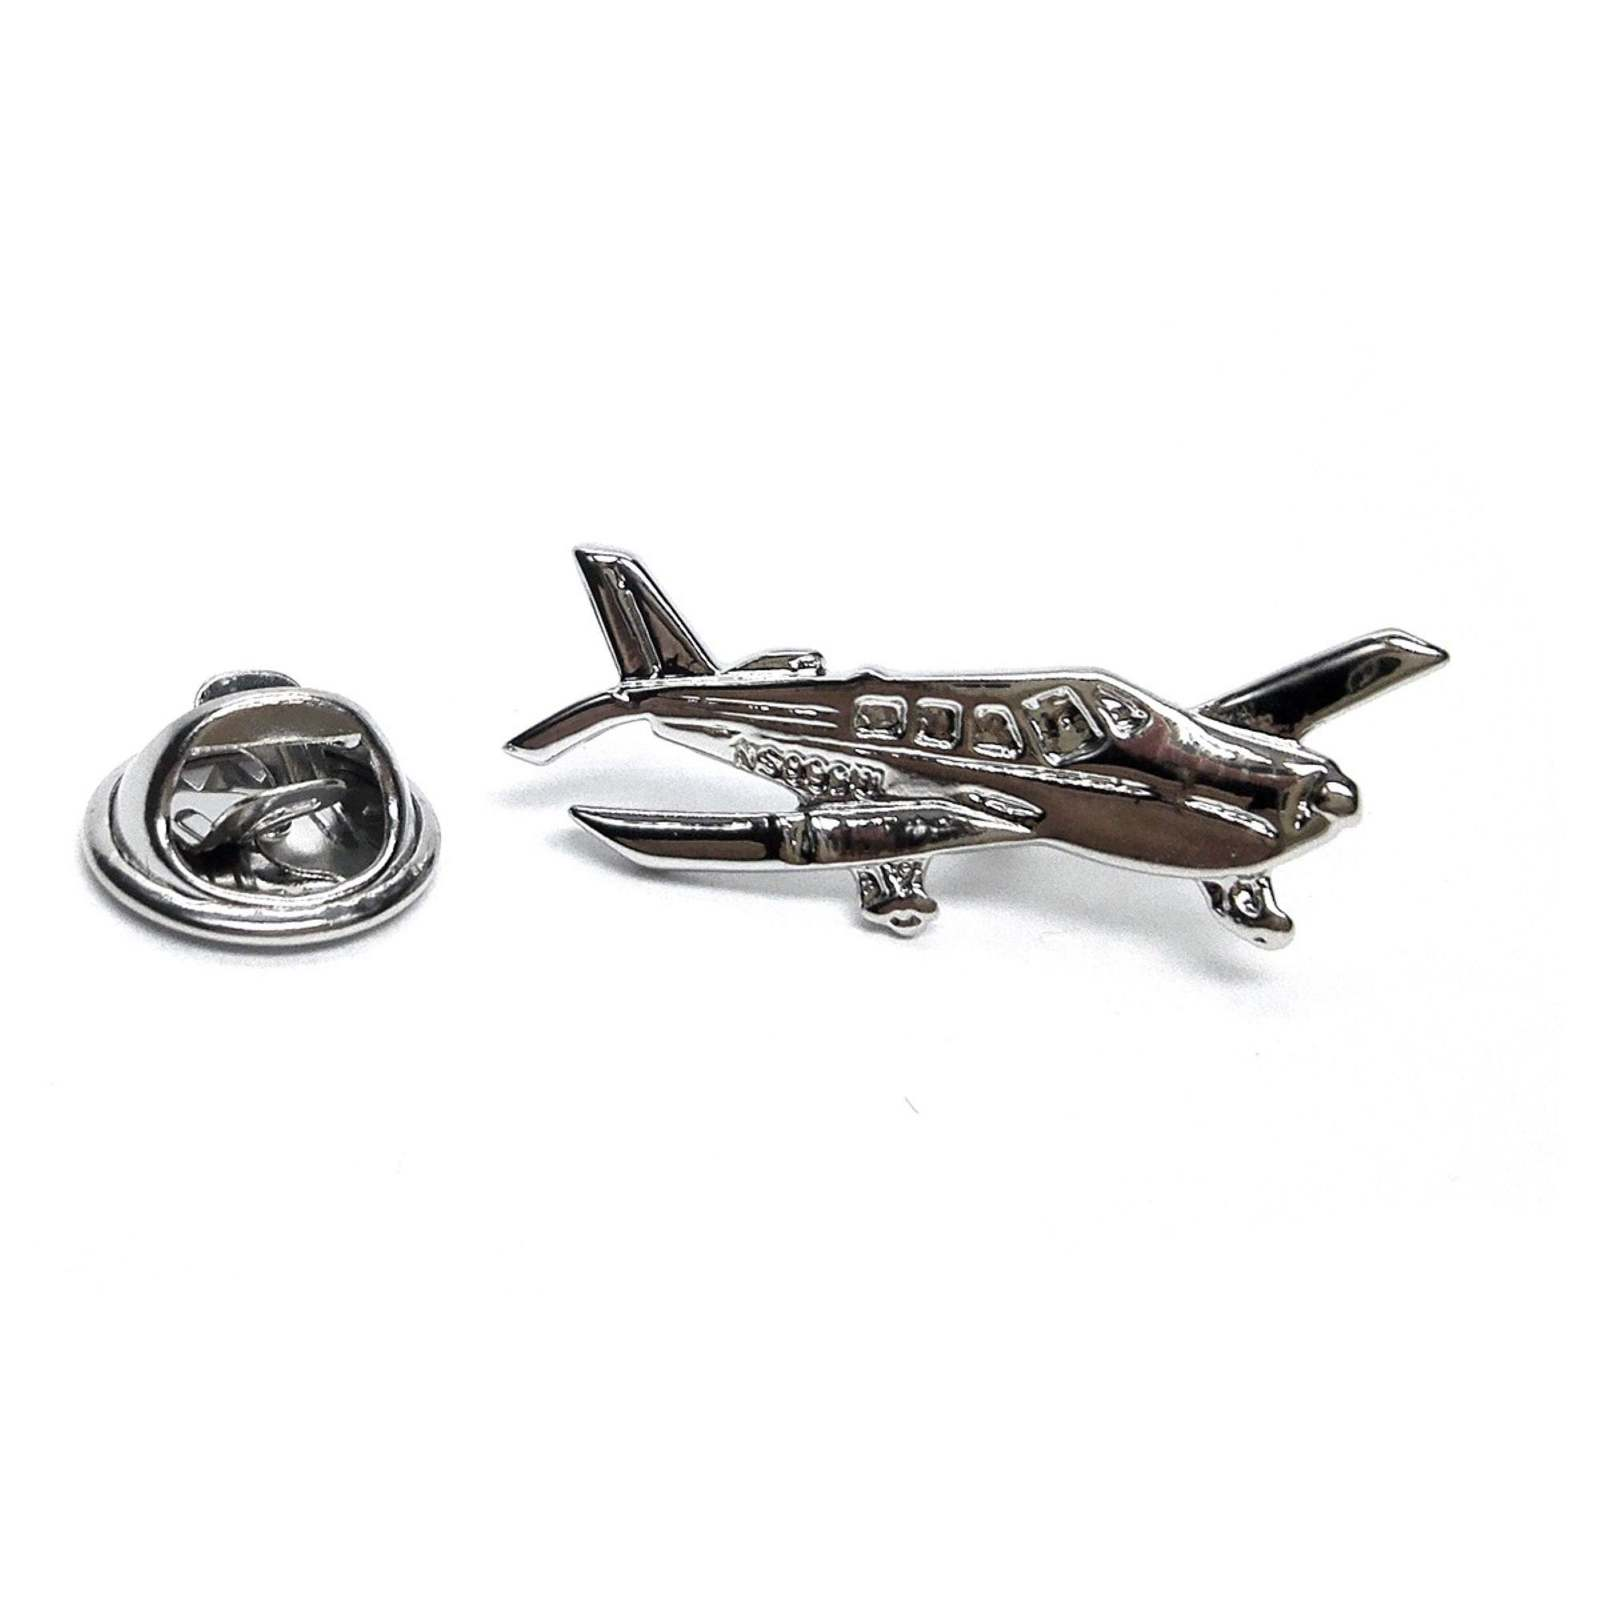 Piper Archer Aeroplane tie pin, Lapel Pin Badge, in gift box